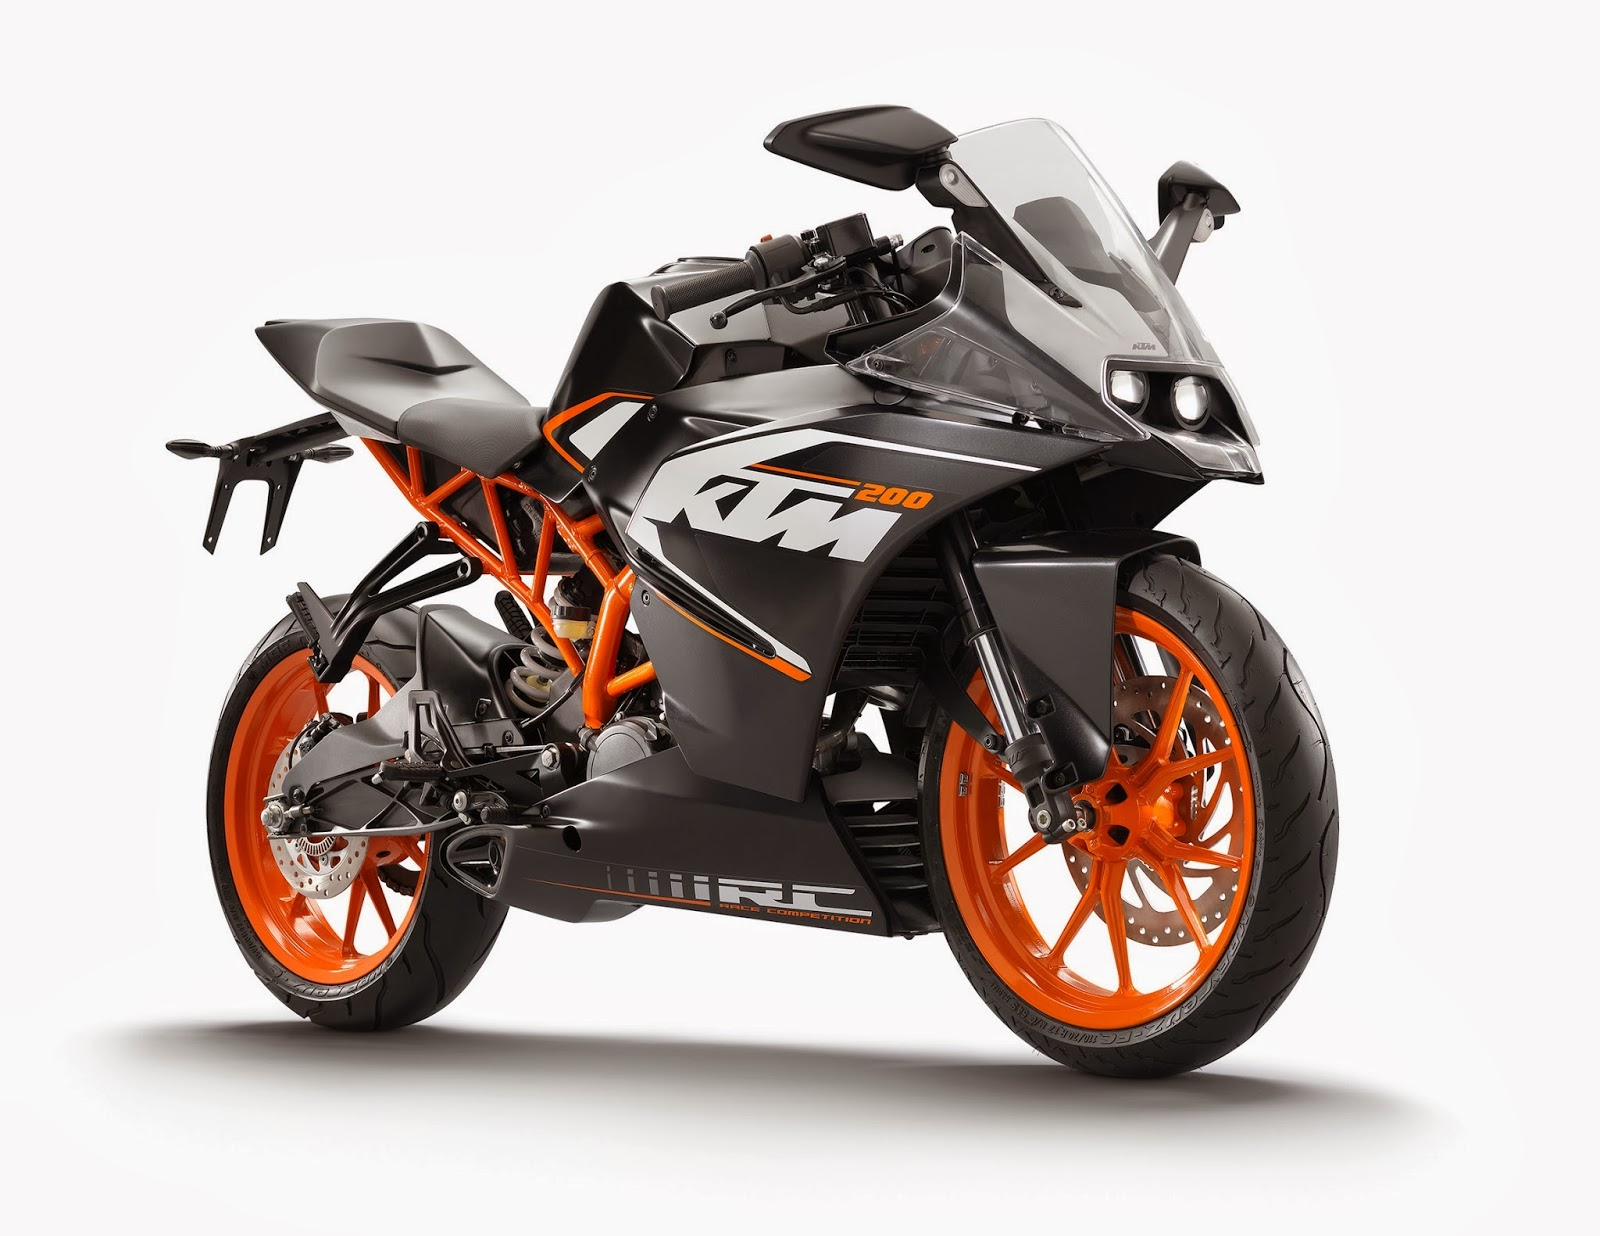 ktm india to launch 4 new bikes rc200 rc390 390 adventure 1190 adventure in 2014 2015. Black Bedroom Furniture Sets. Home Design Ideas